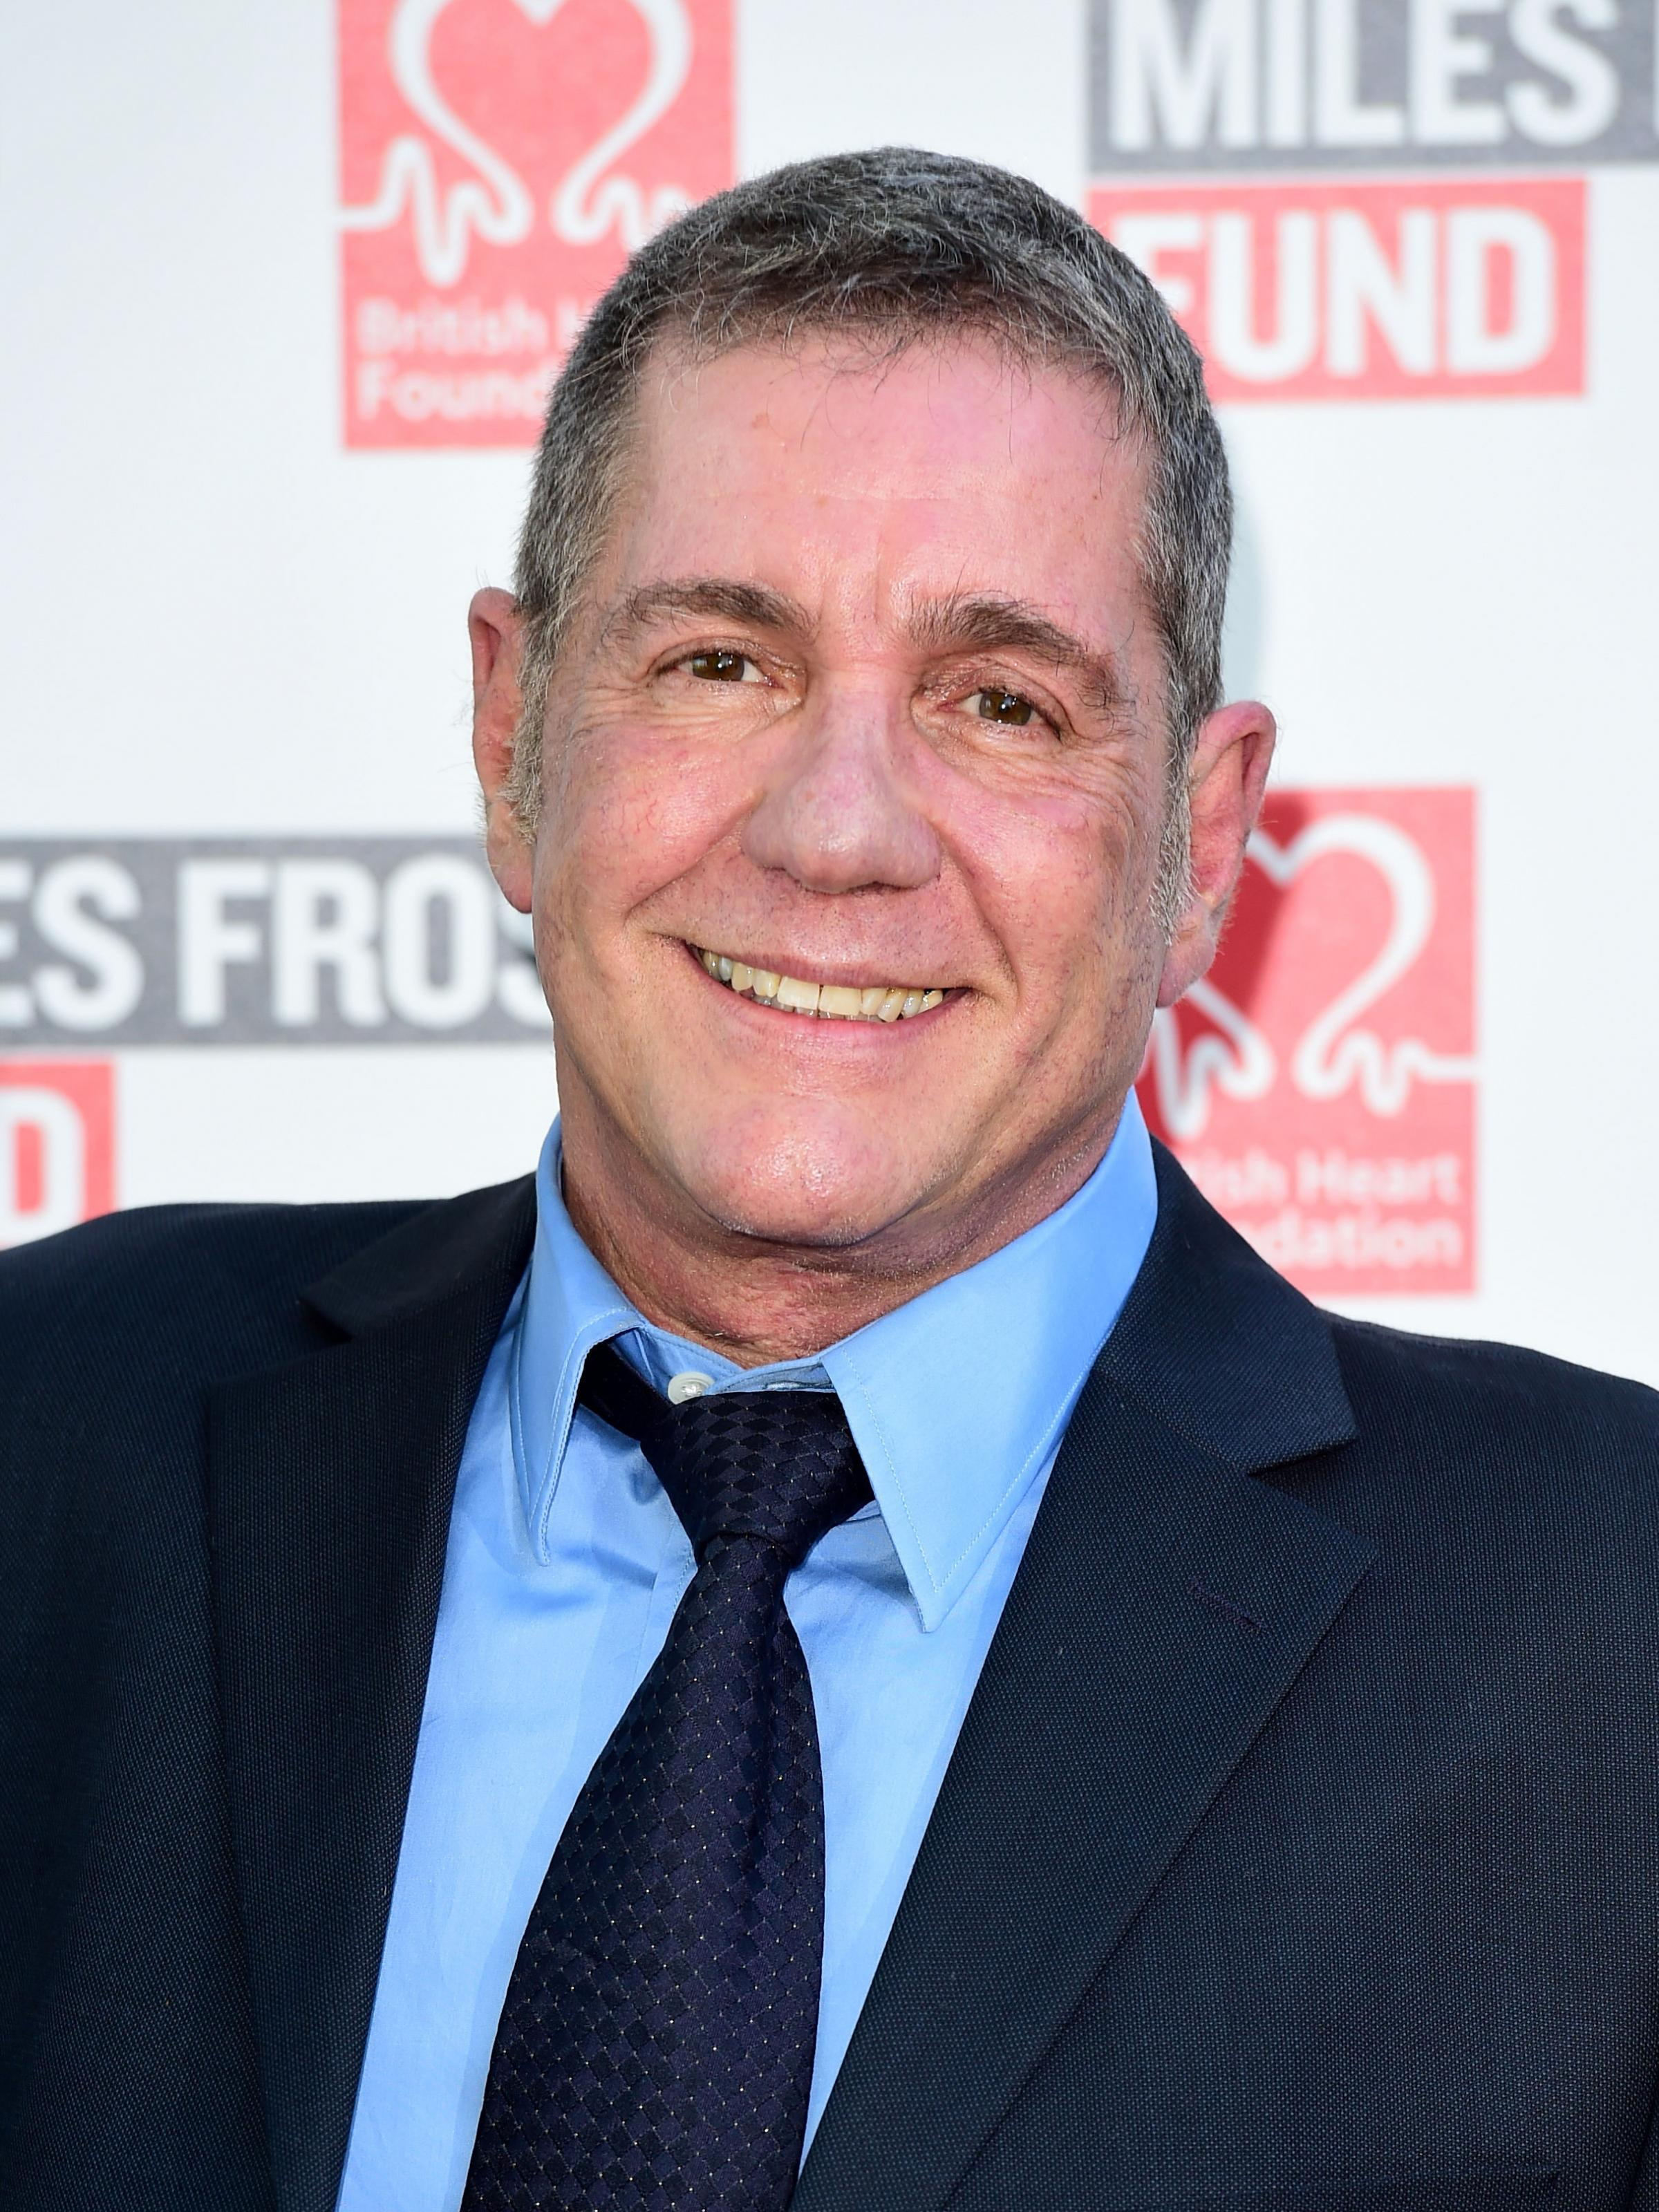 Dale Winton attending the Frost Summer Party Fundraiser in London. The presenter has died at the age of 62. Picture: PA